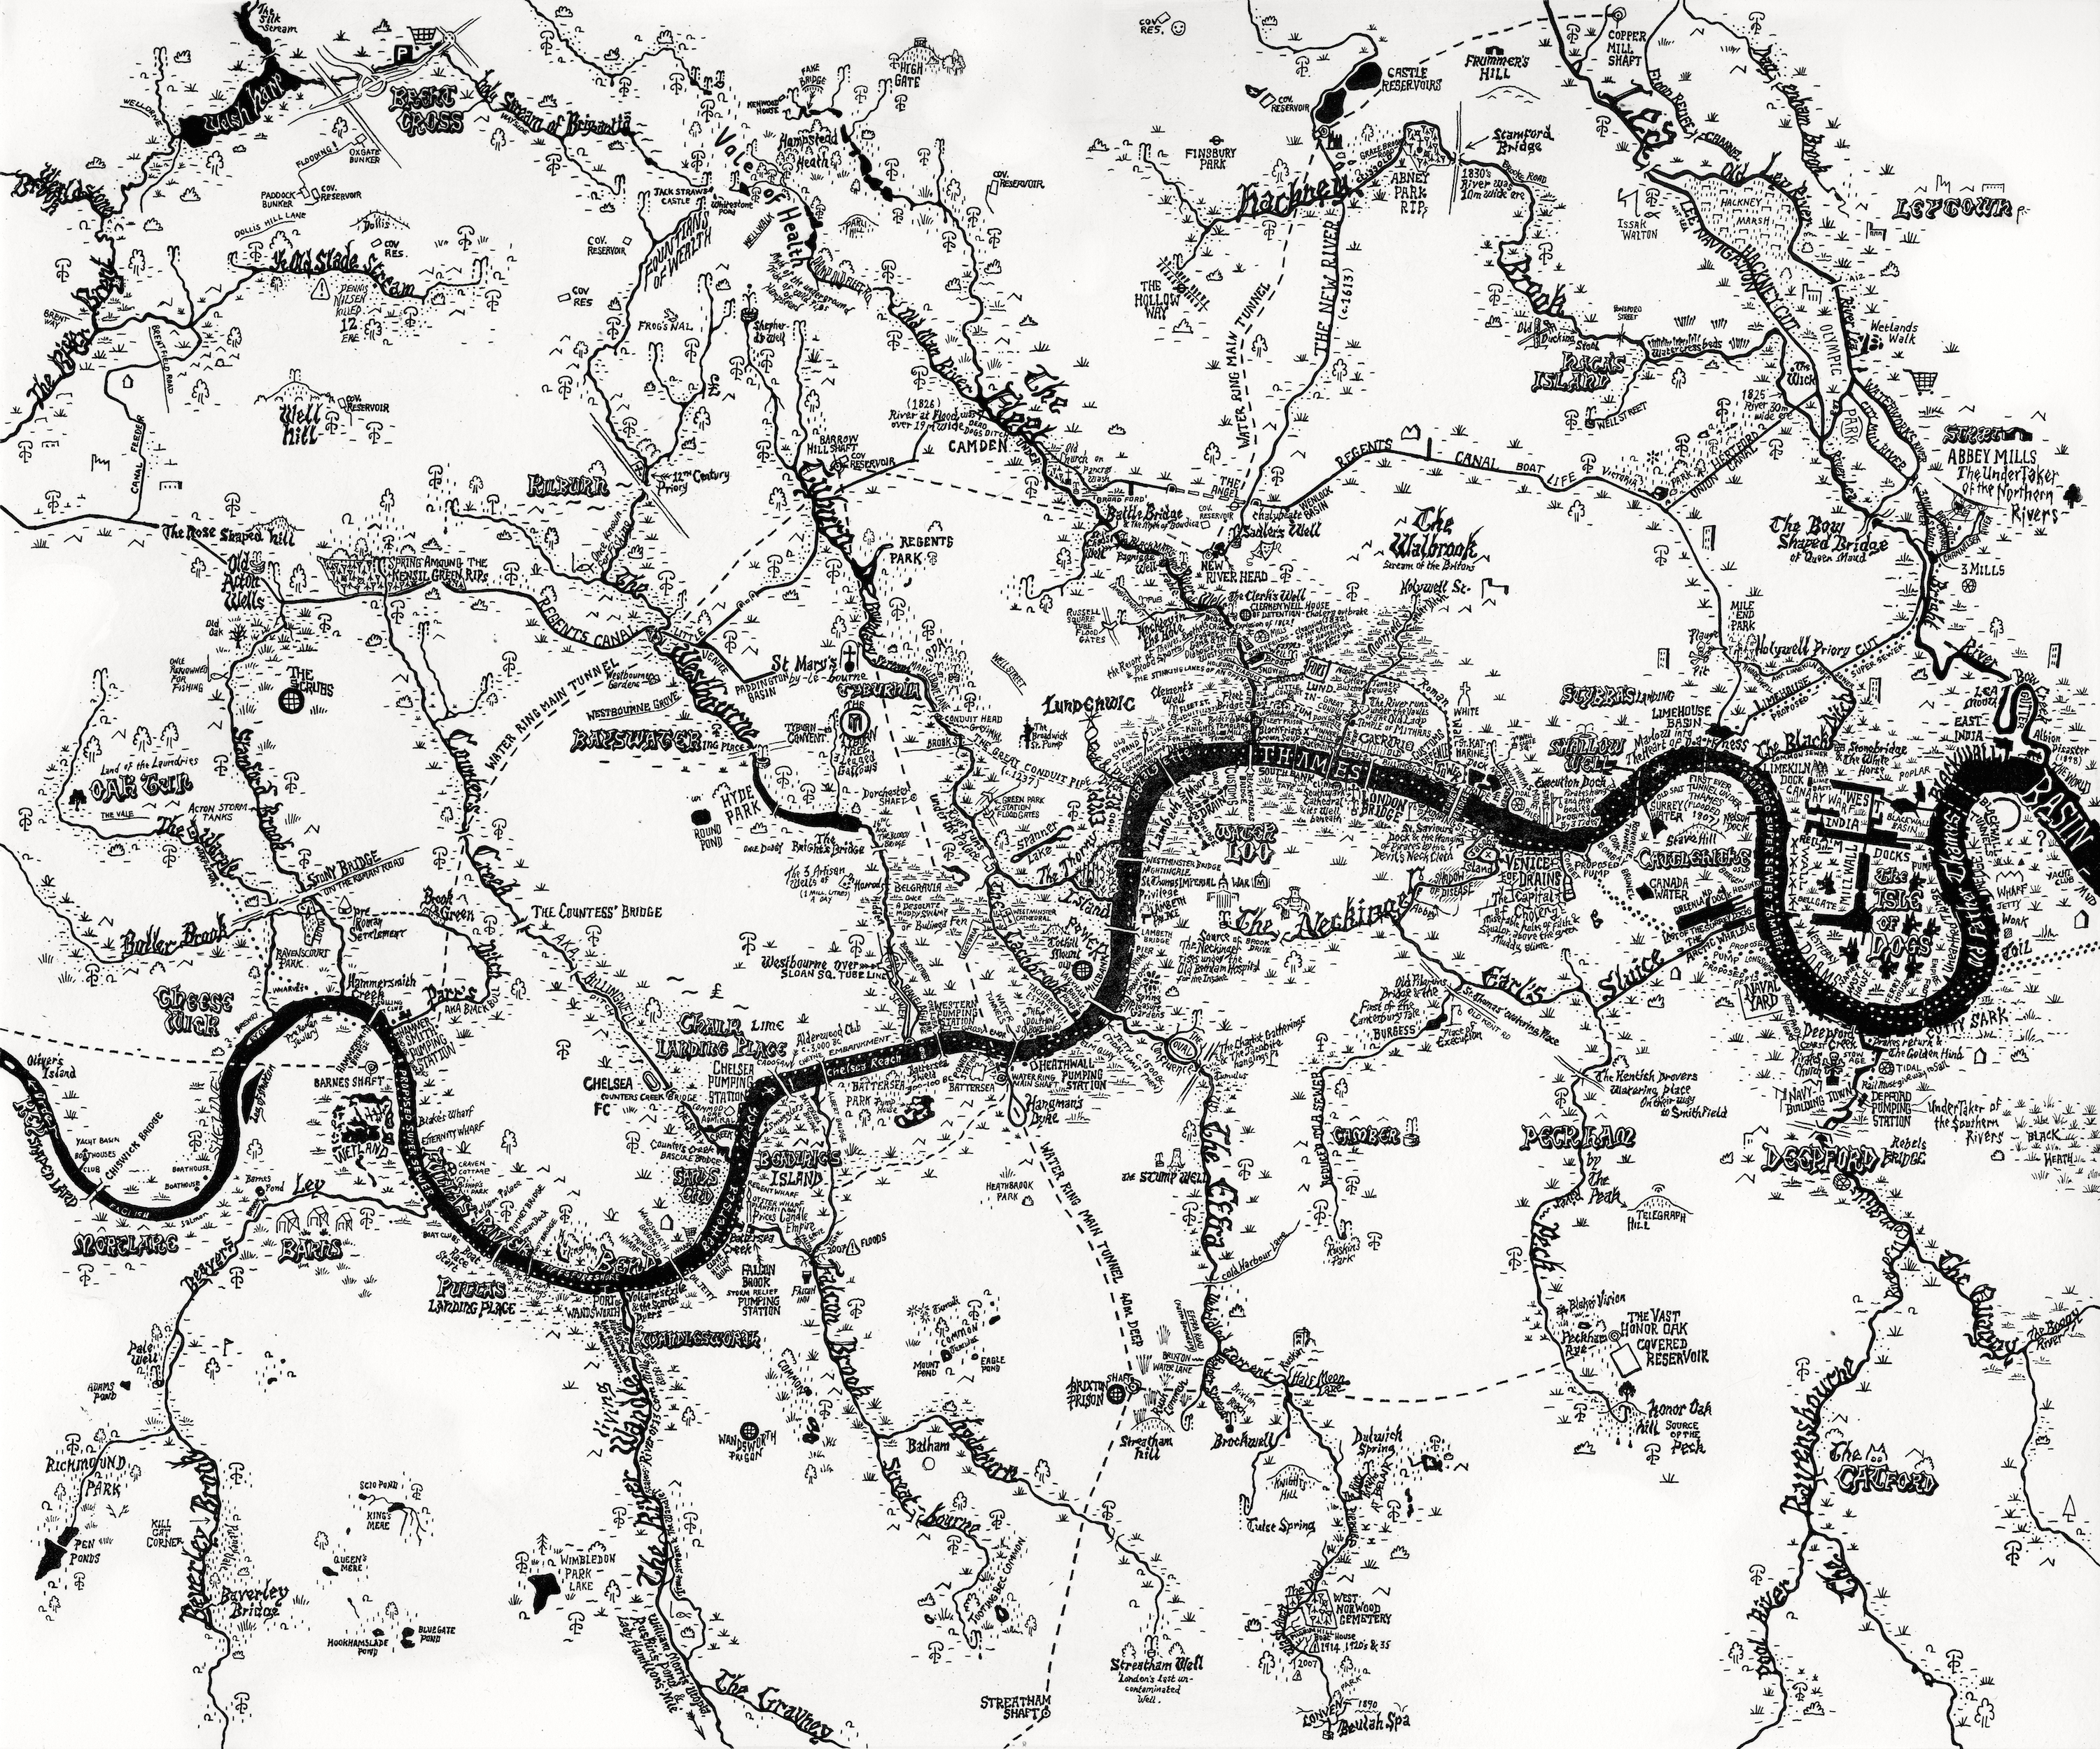 Rivers Of London Amazing HandDrawn Map By Stephen Walter Londonist - Rivers of